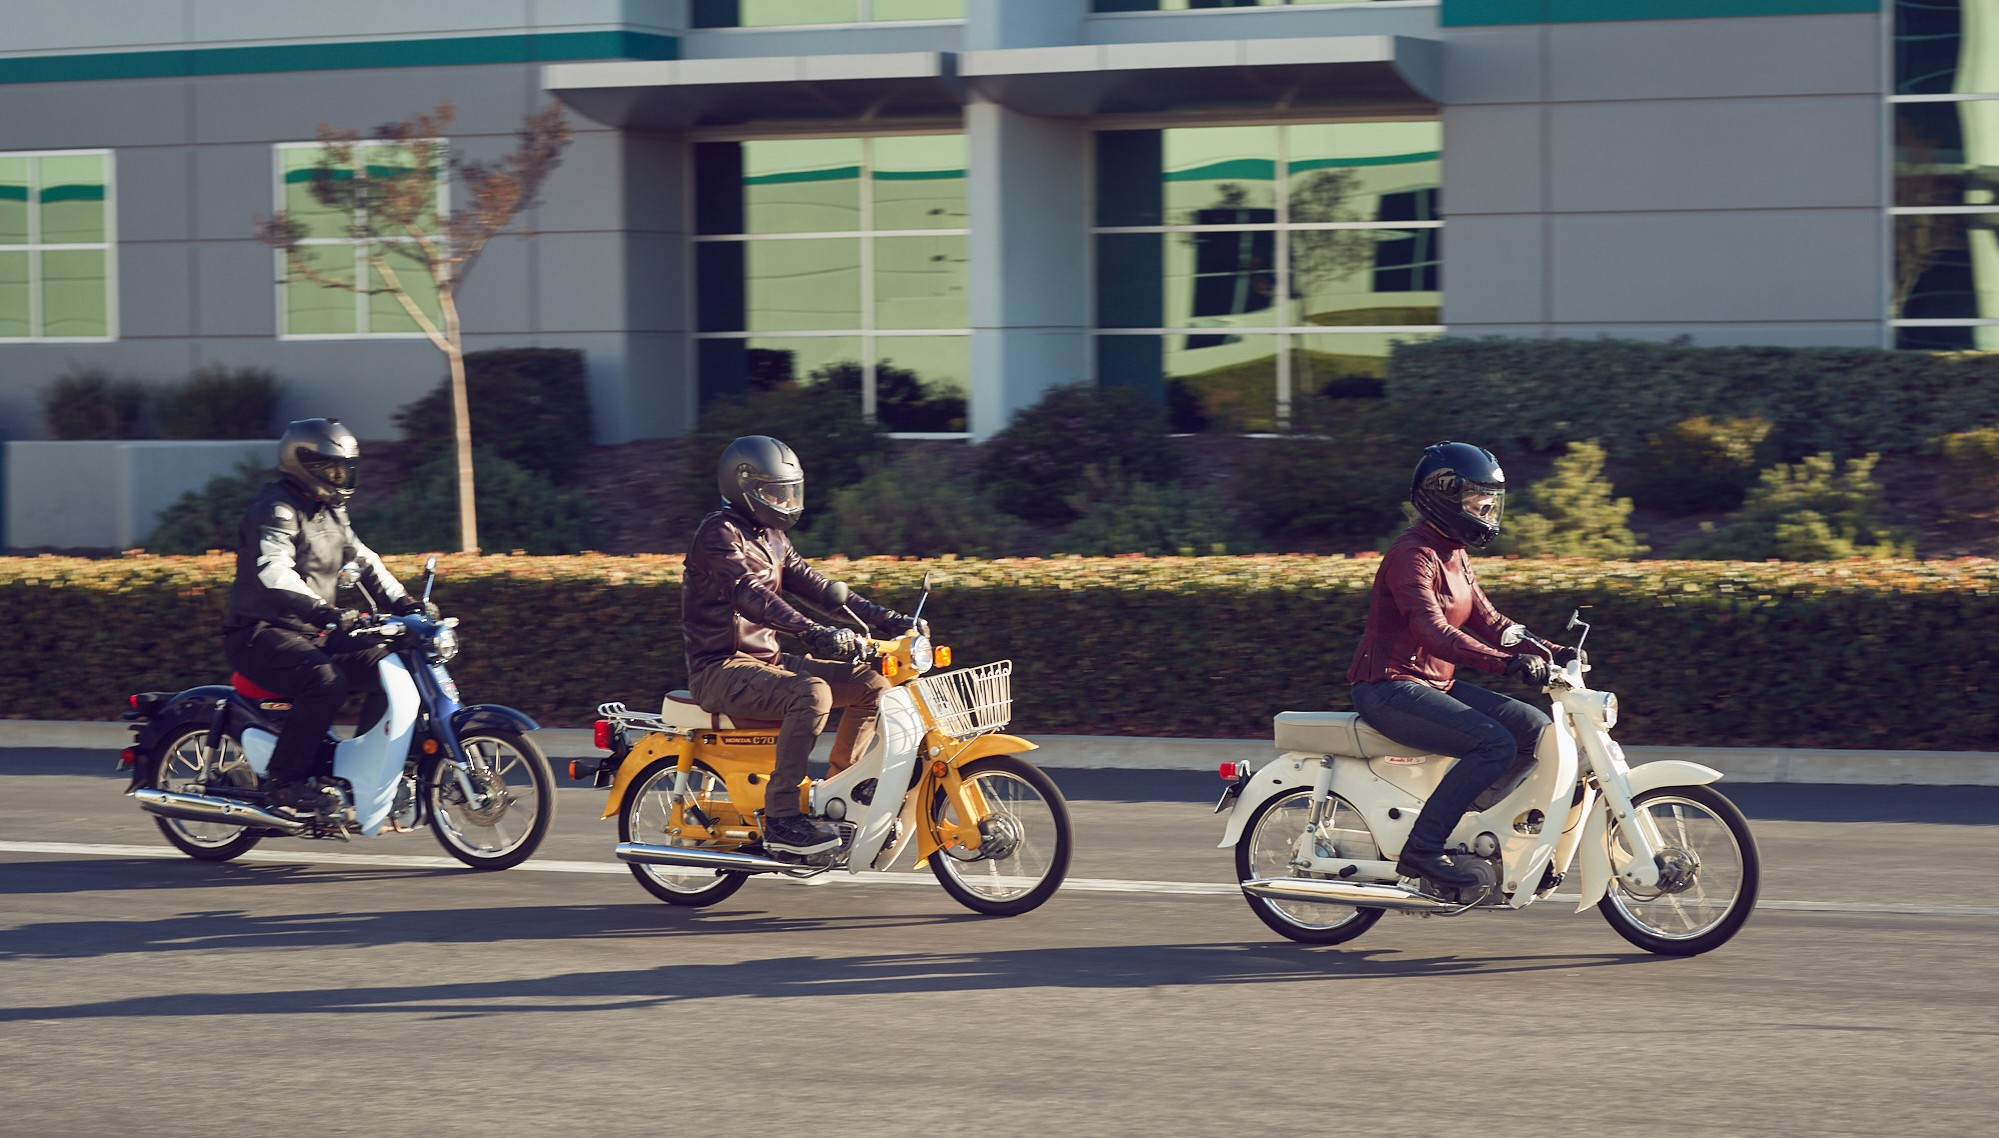 2019 Honda Super Cub first ride review - RevZilla